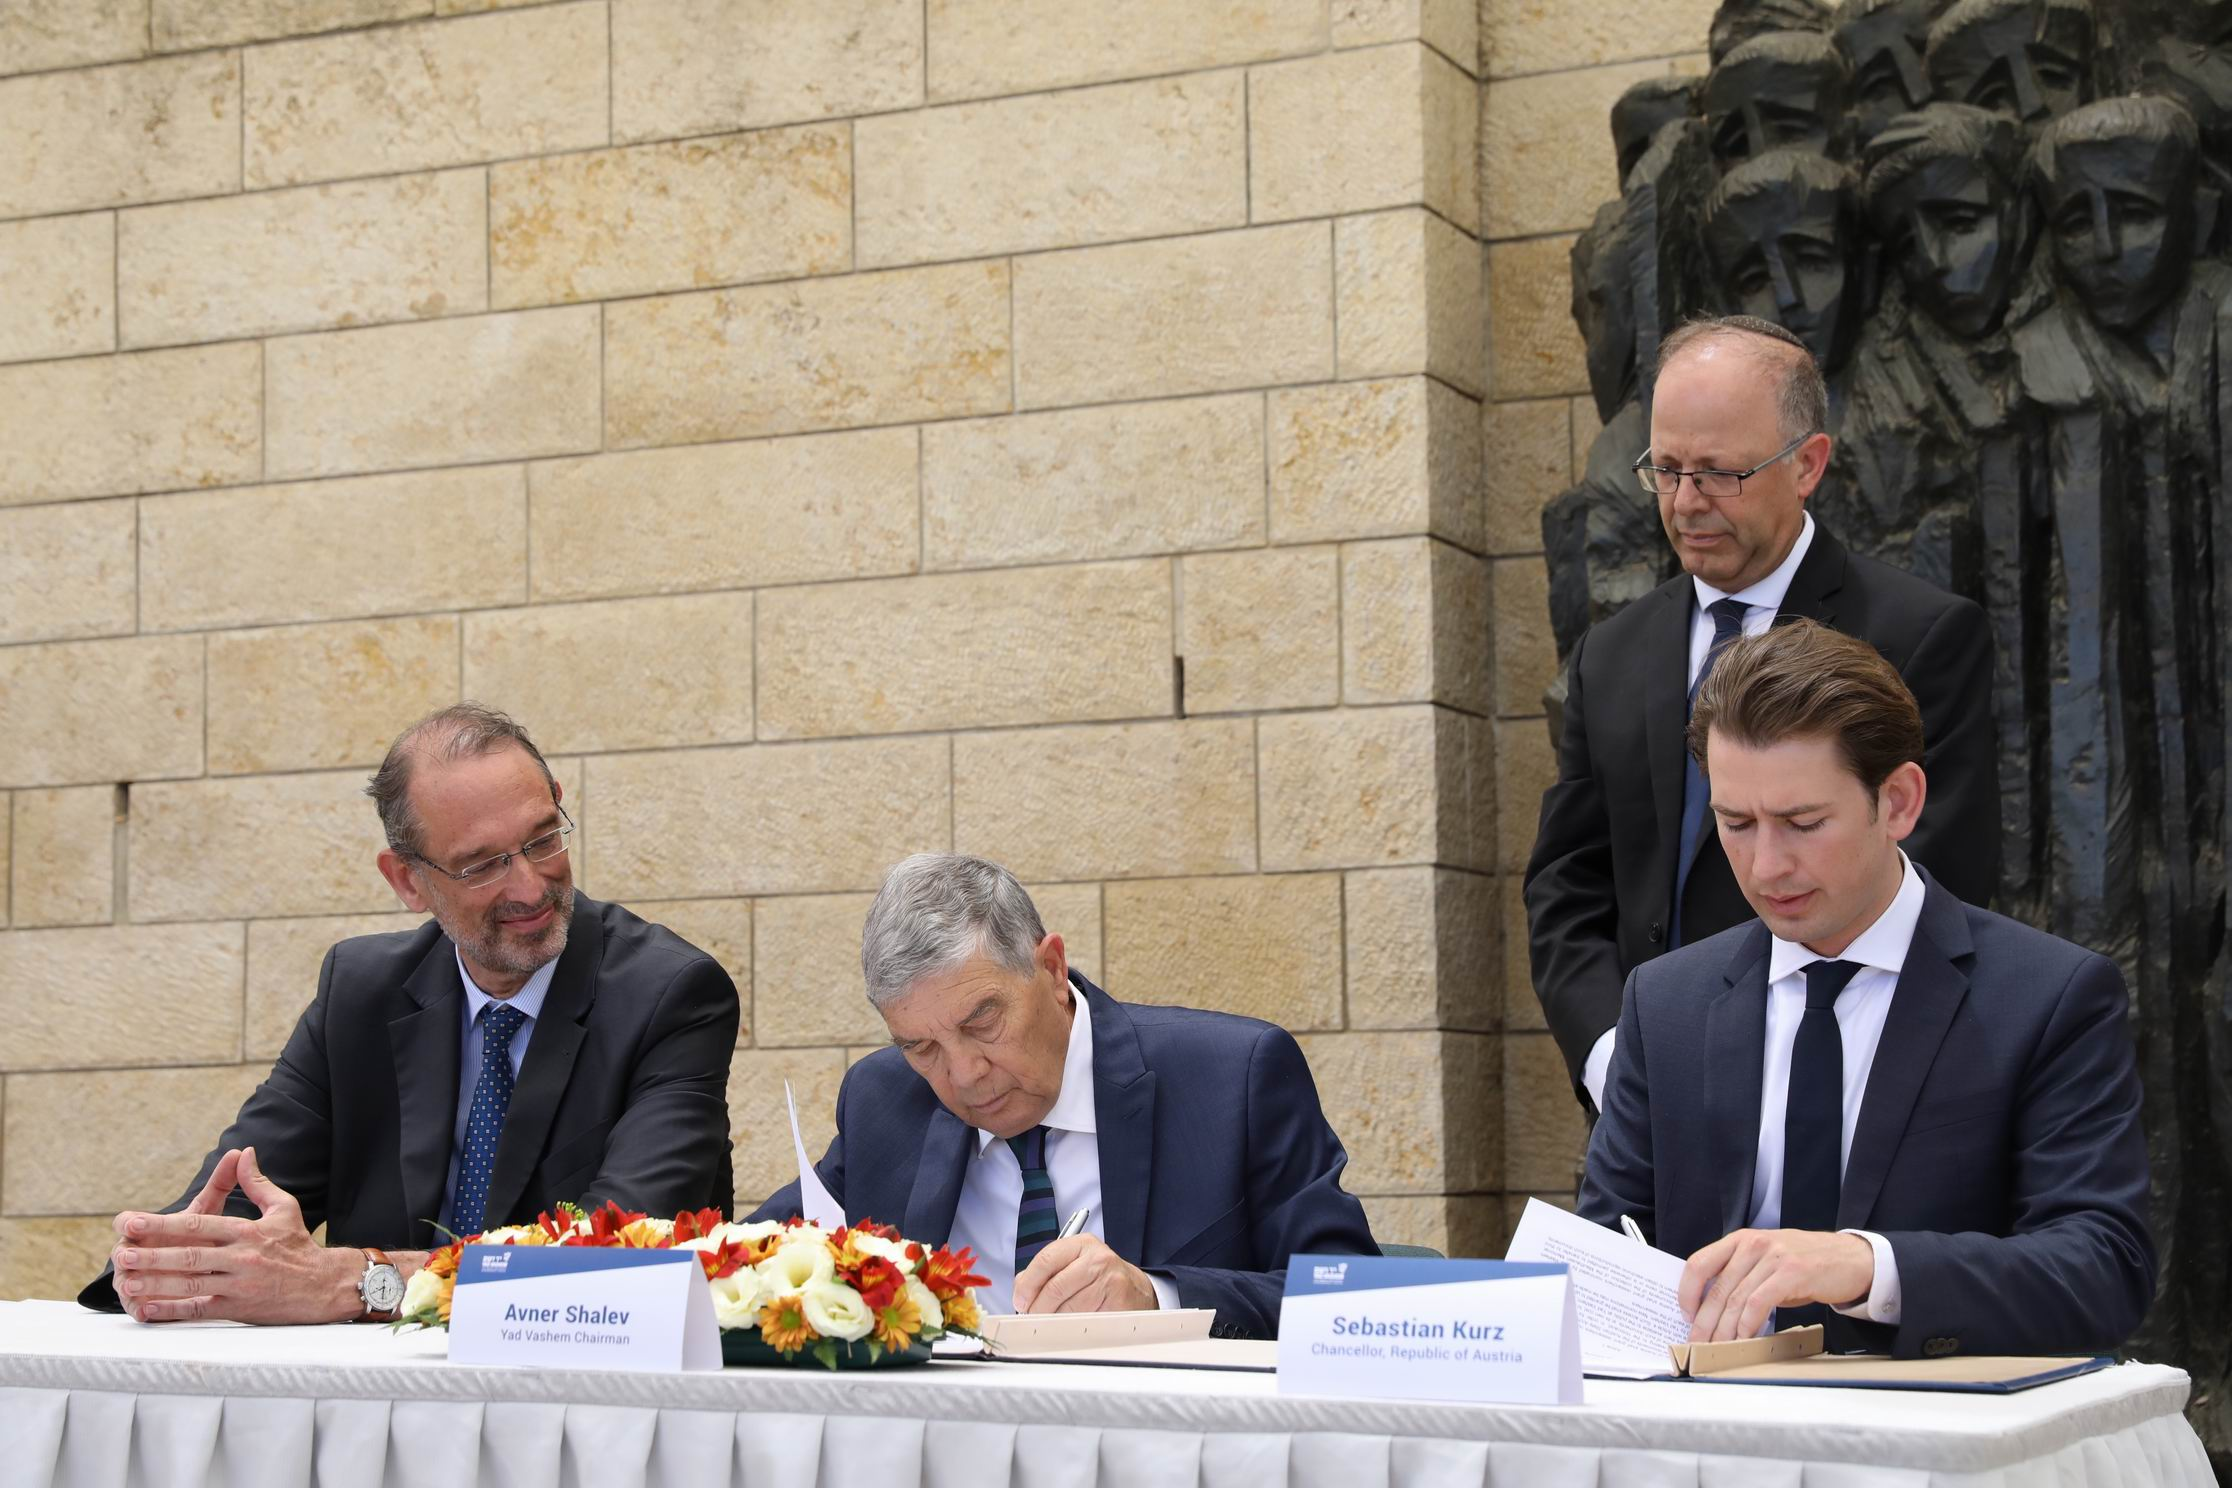 The signing of an archival agreement will allow Yad Vashem access to Holocaust-related documentation in Austria